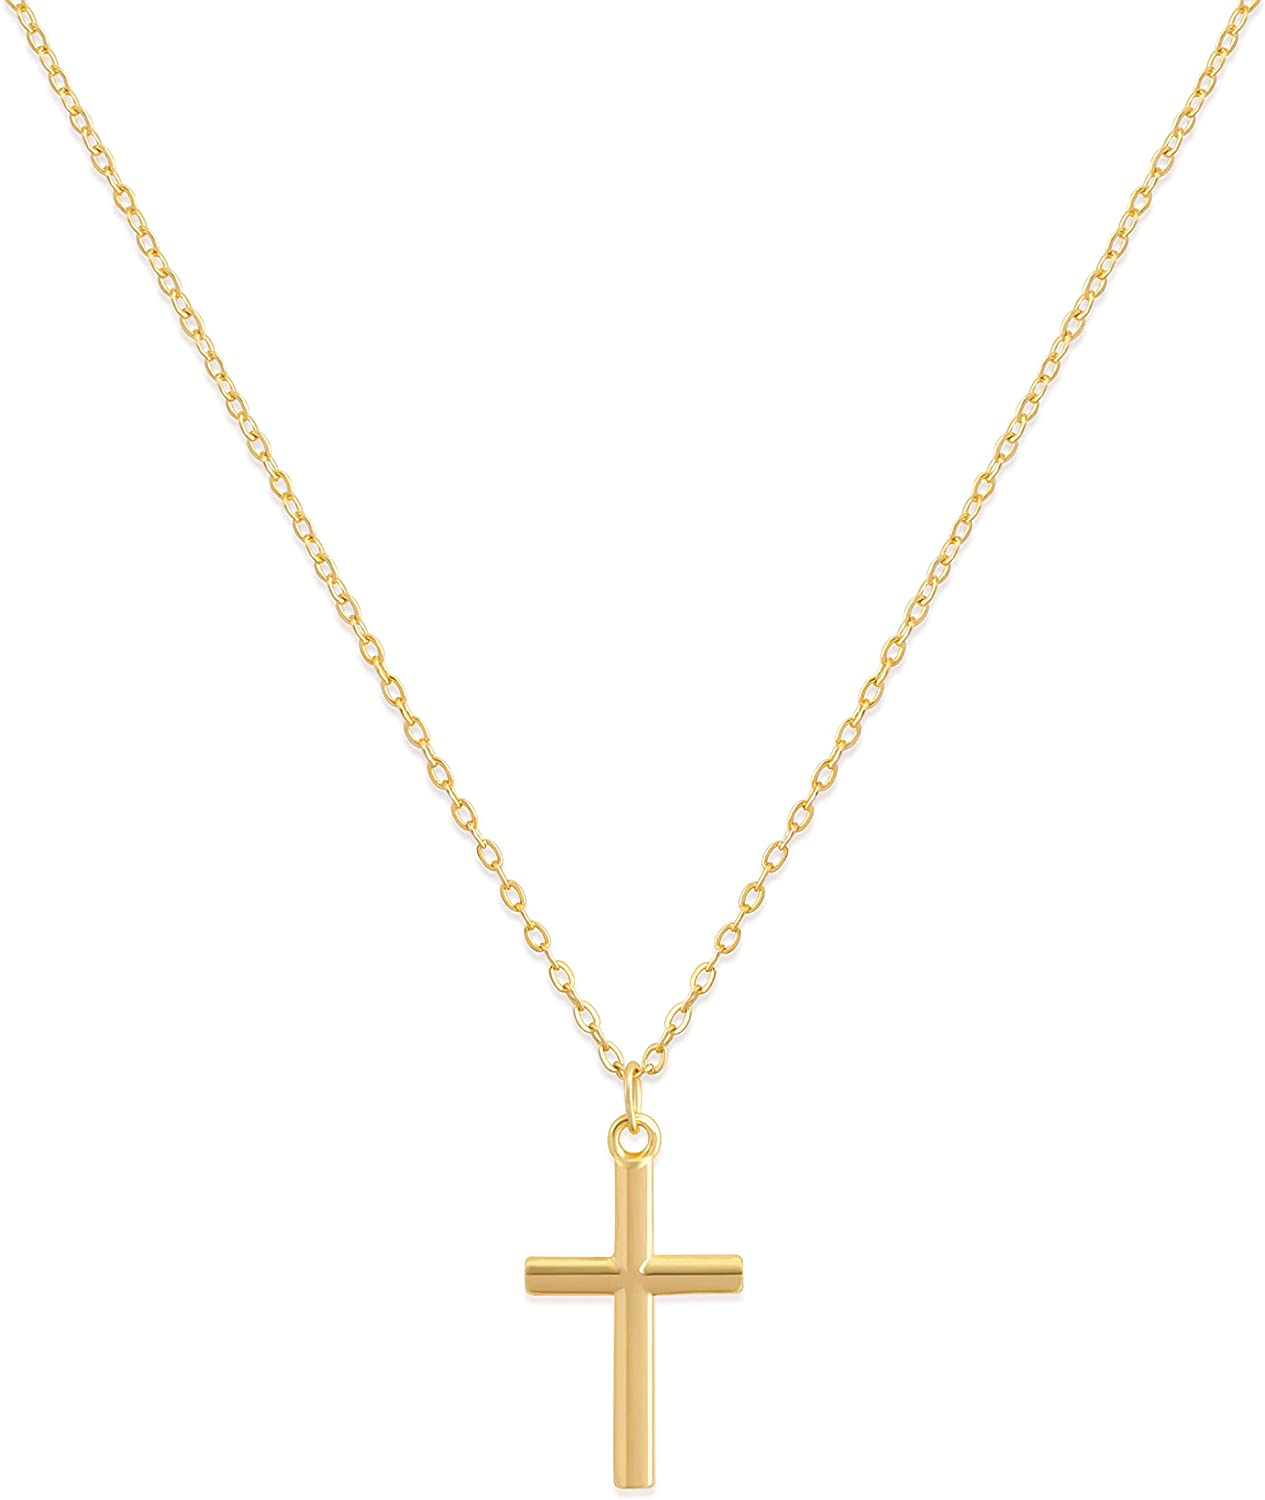 Valloey Rover Cross Pendant Chain Necklace,14K Gold Plated Dainty Cute Lucky Cross Tiny Pendant Necklaces for Women Men Jewelry Gifts